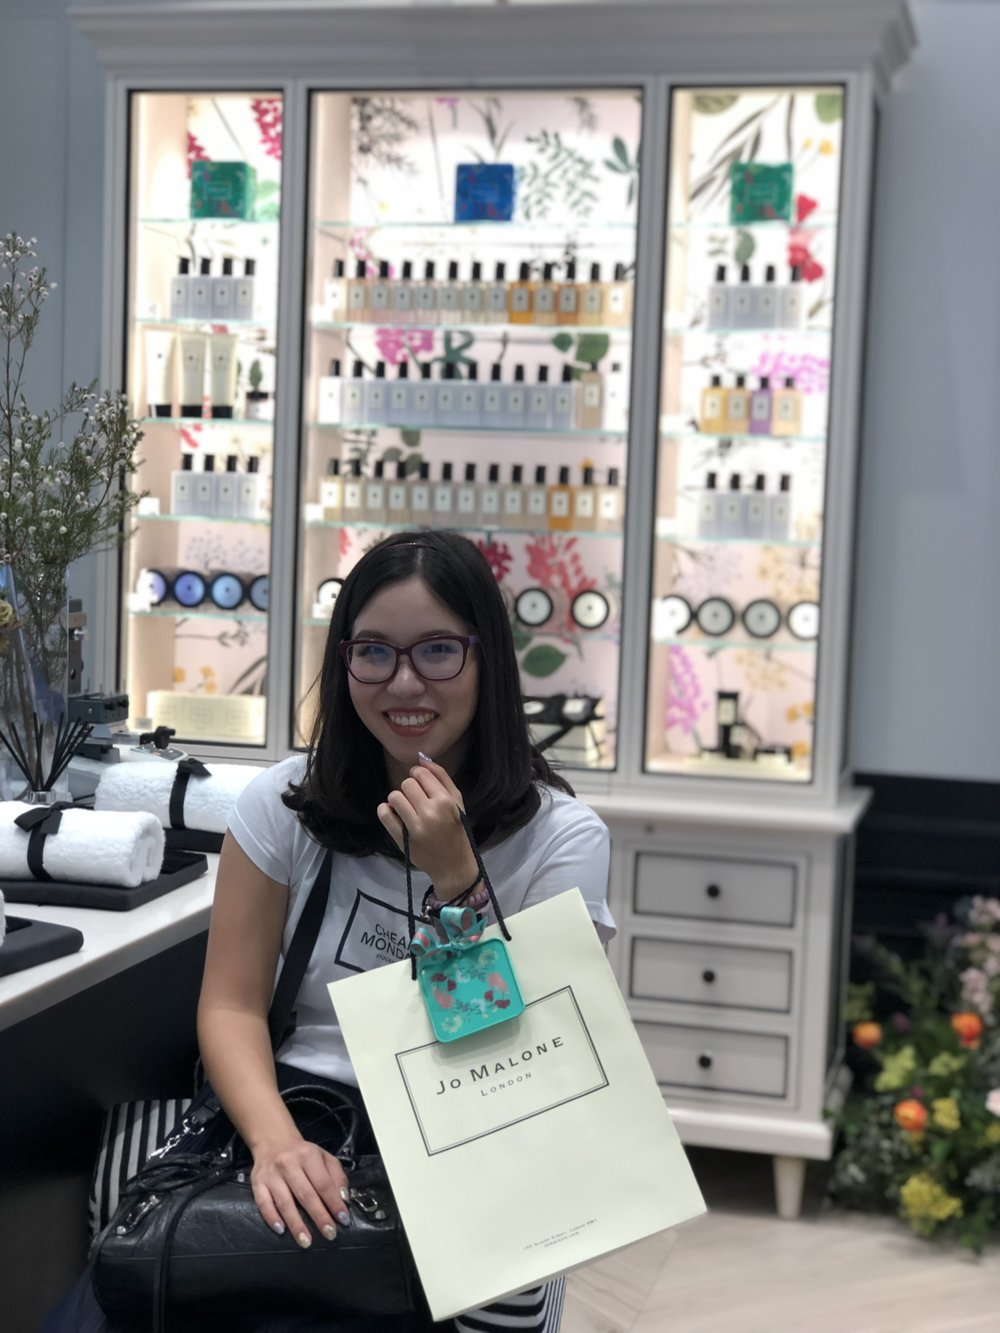 Me, smiling from ear to ear at the Jo Malone shop.